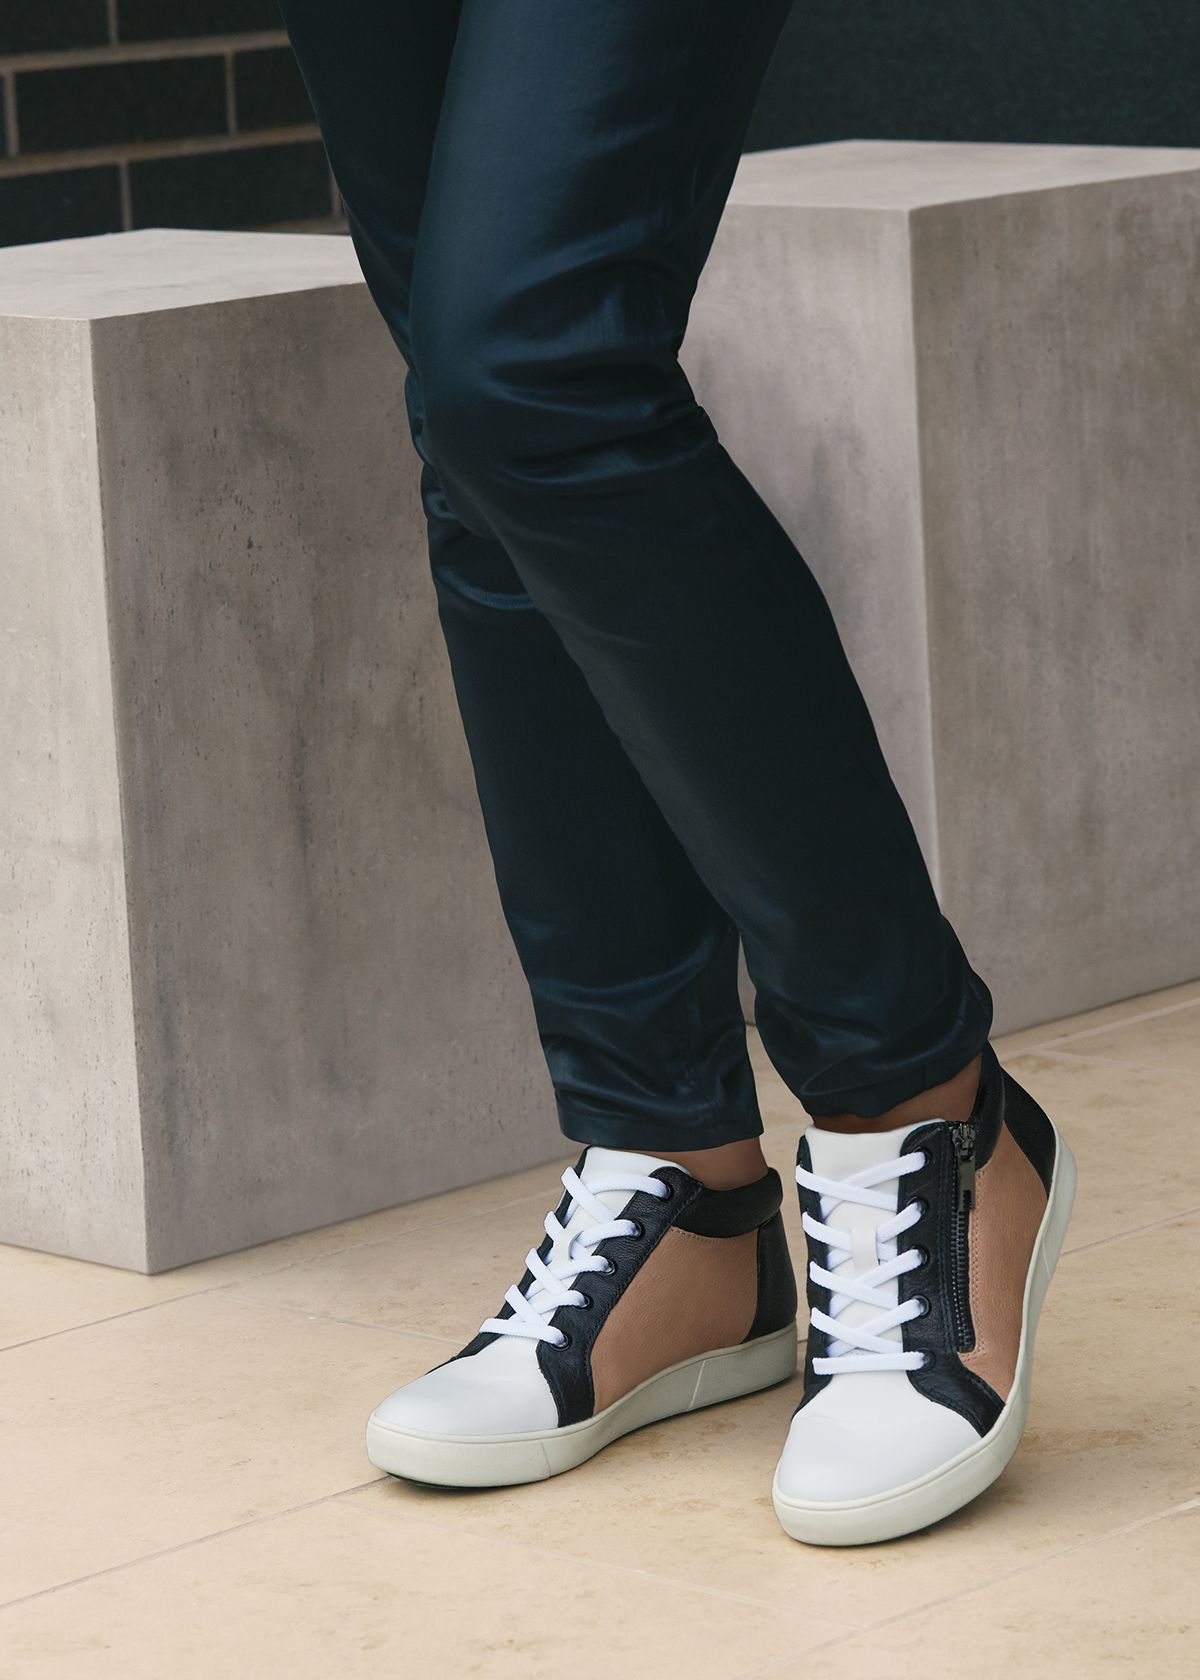 Step up your jeans and sneakers combo